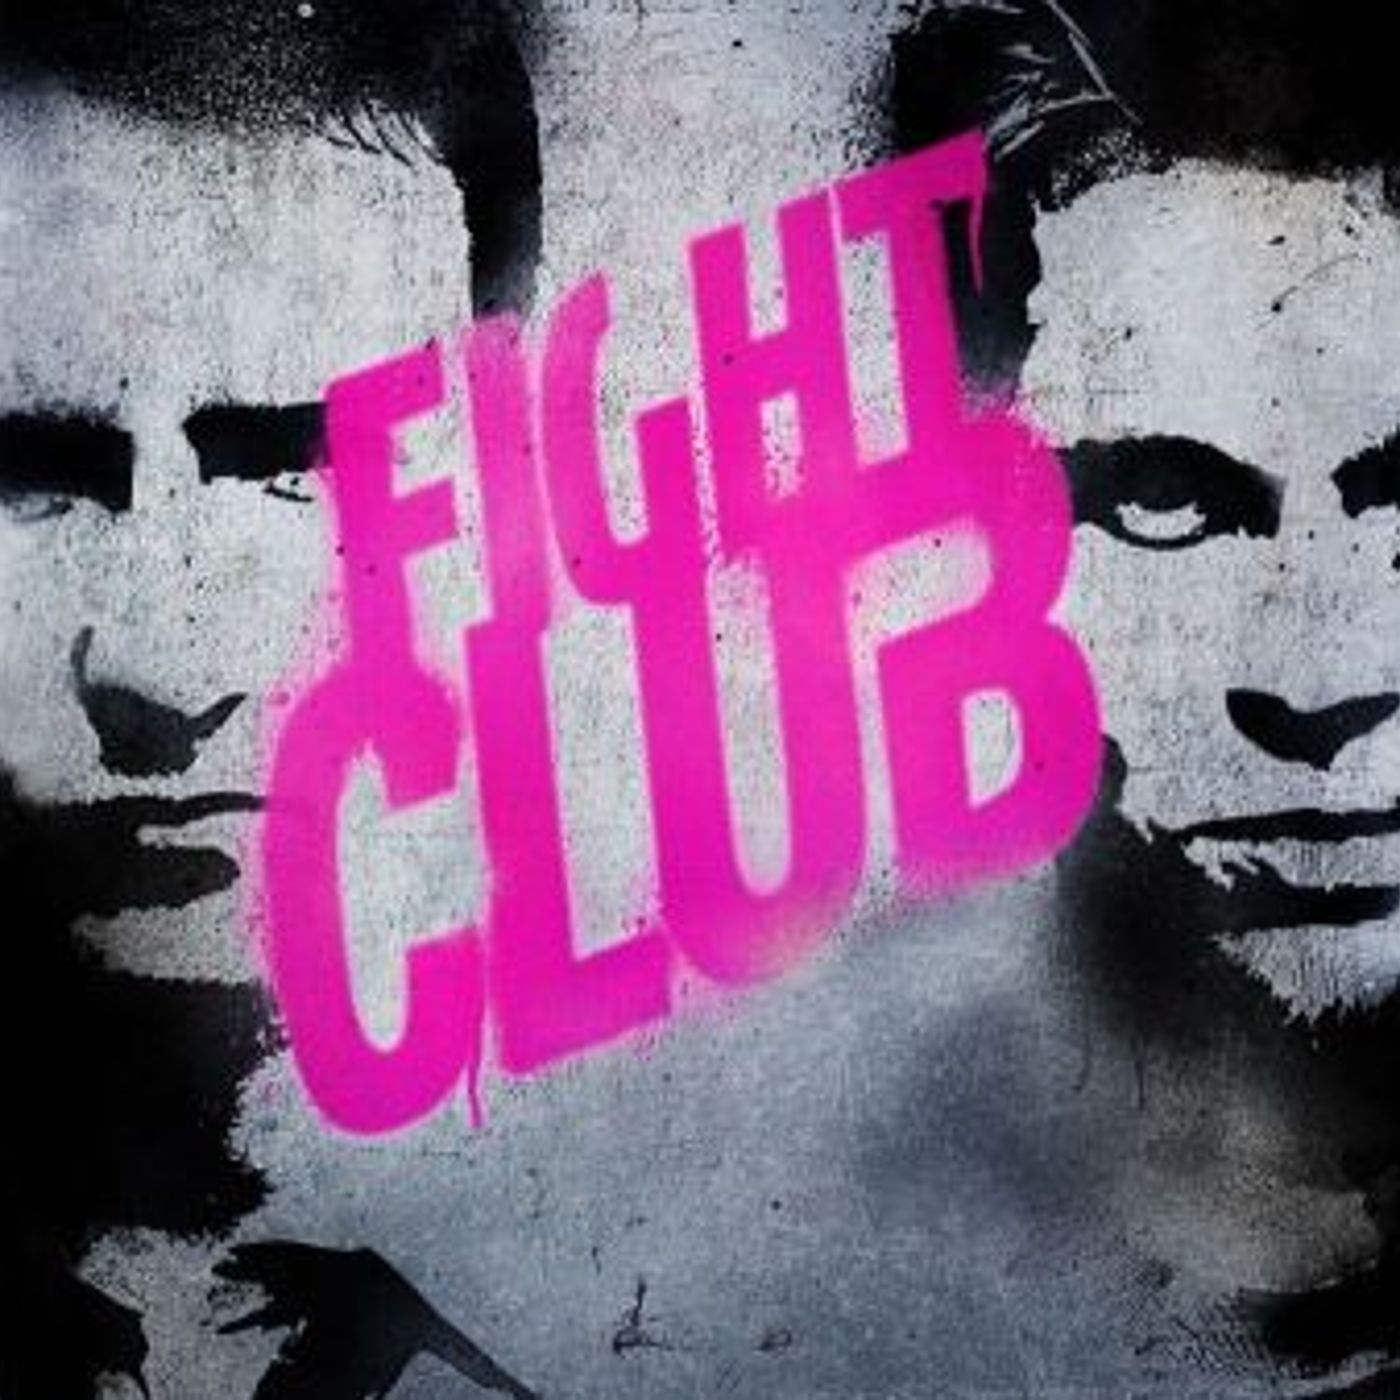 BEYOND THE SCREEN - Fight Club (1999)